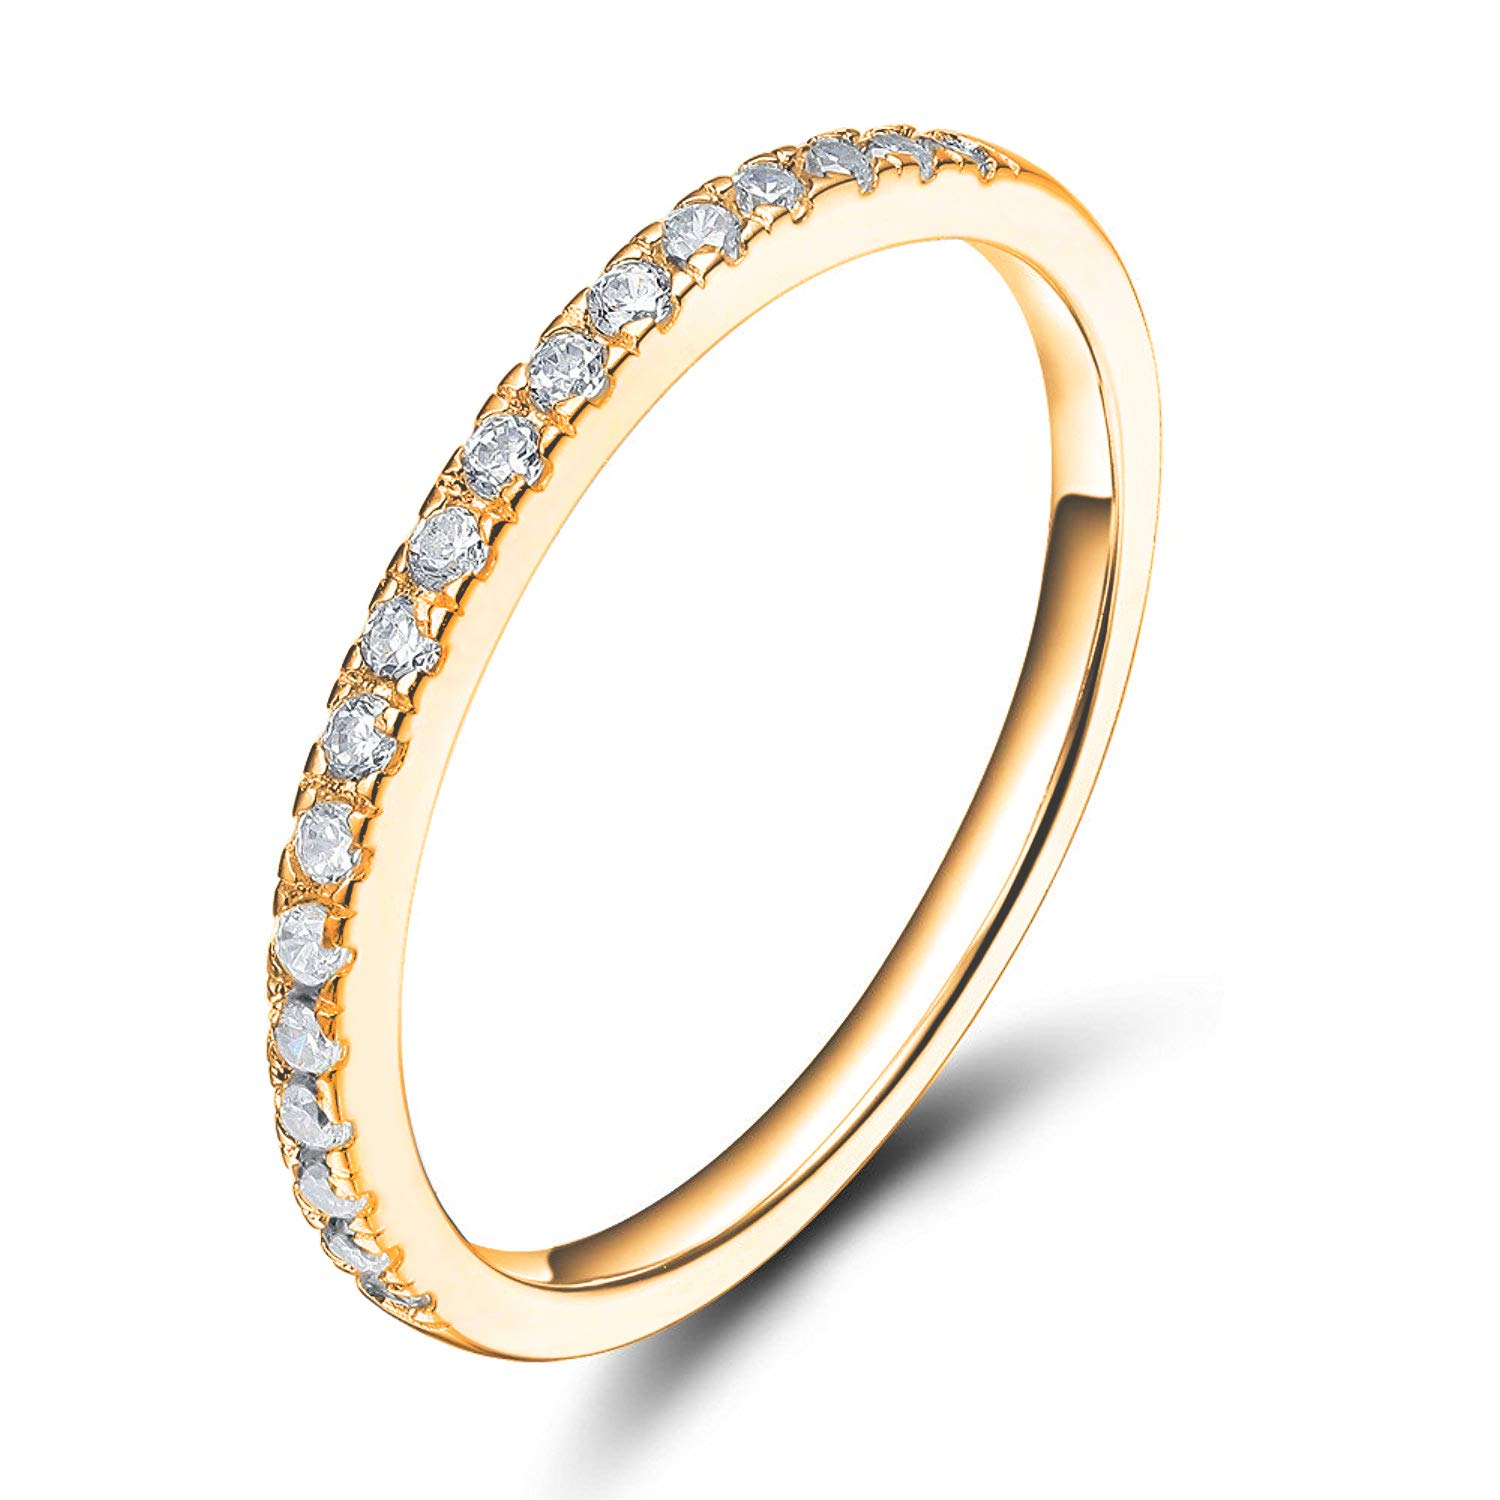 Sz 6.0 Solid 10K Yellow Gold Diamond 2MM Half Eternity Stackable Wedding Anniversary Band Ring by Kobelle